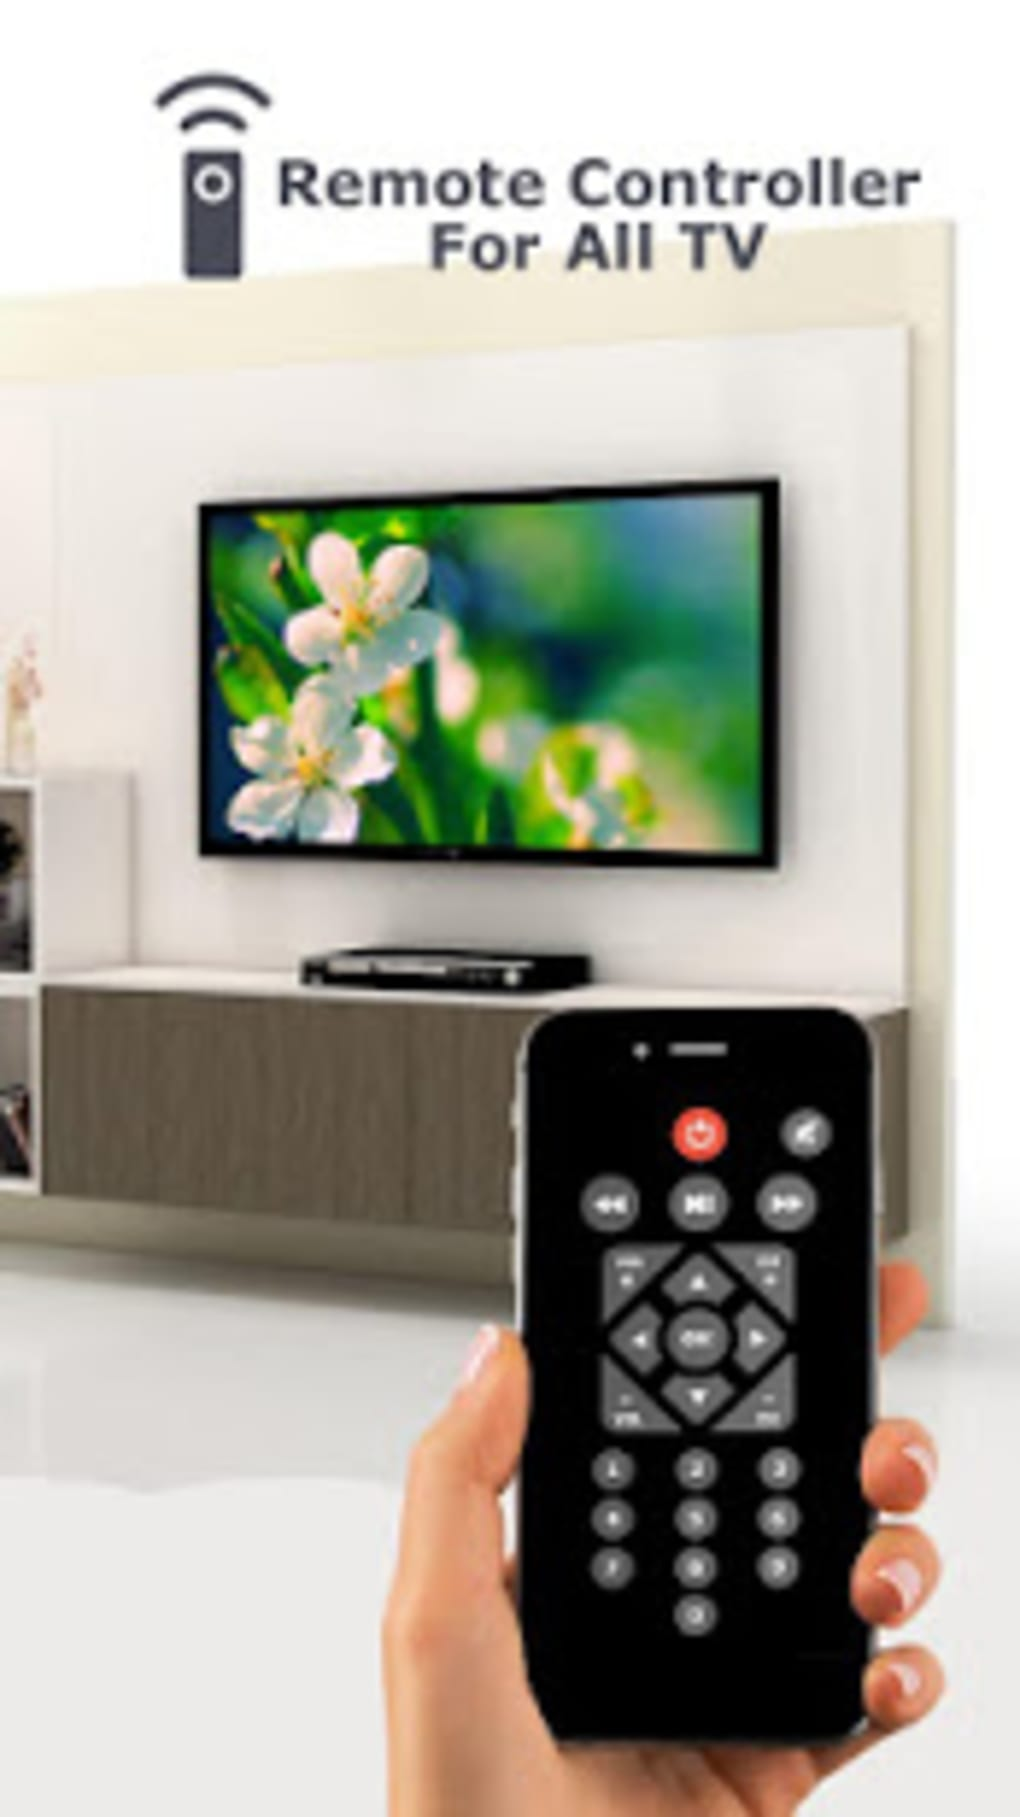 Remote Control for All TV - Universal Remote for Android